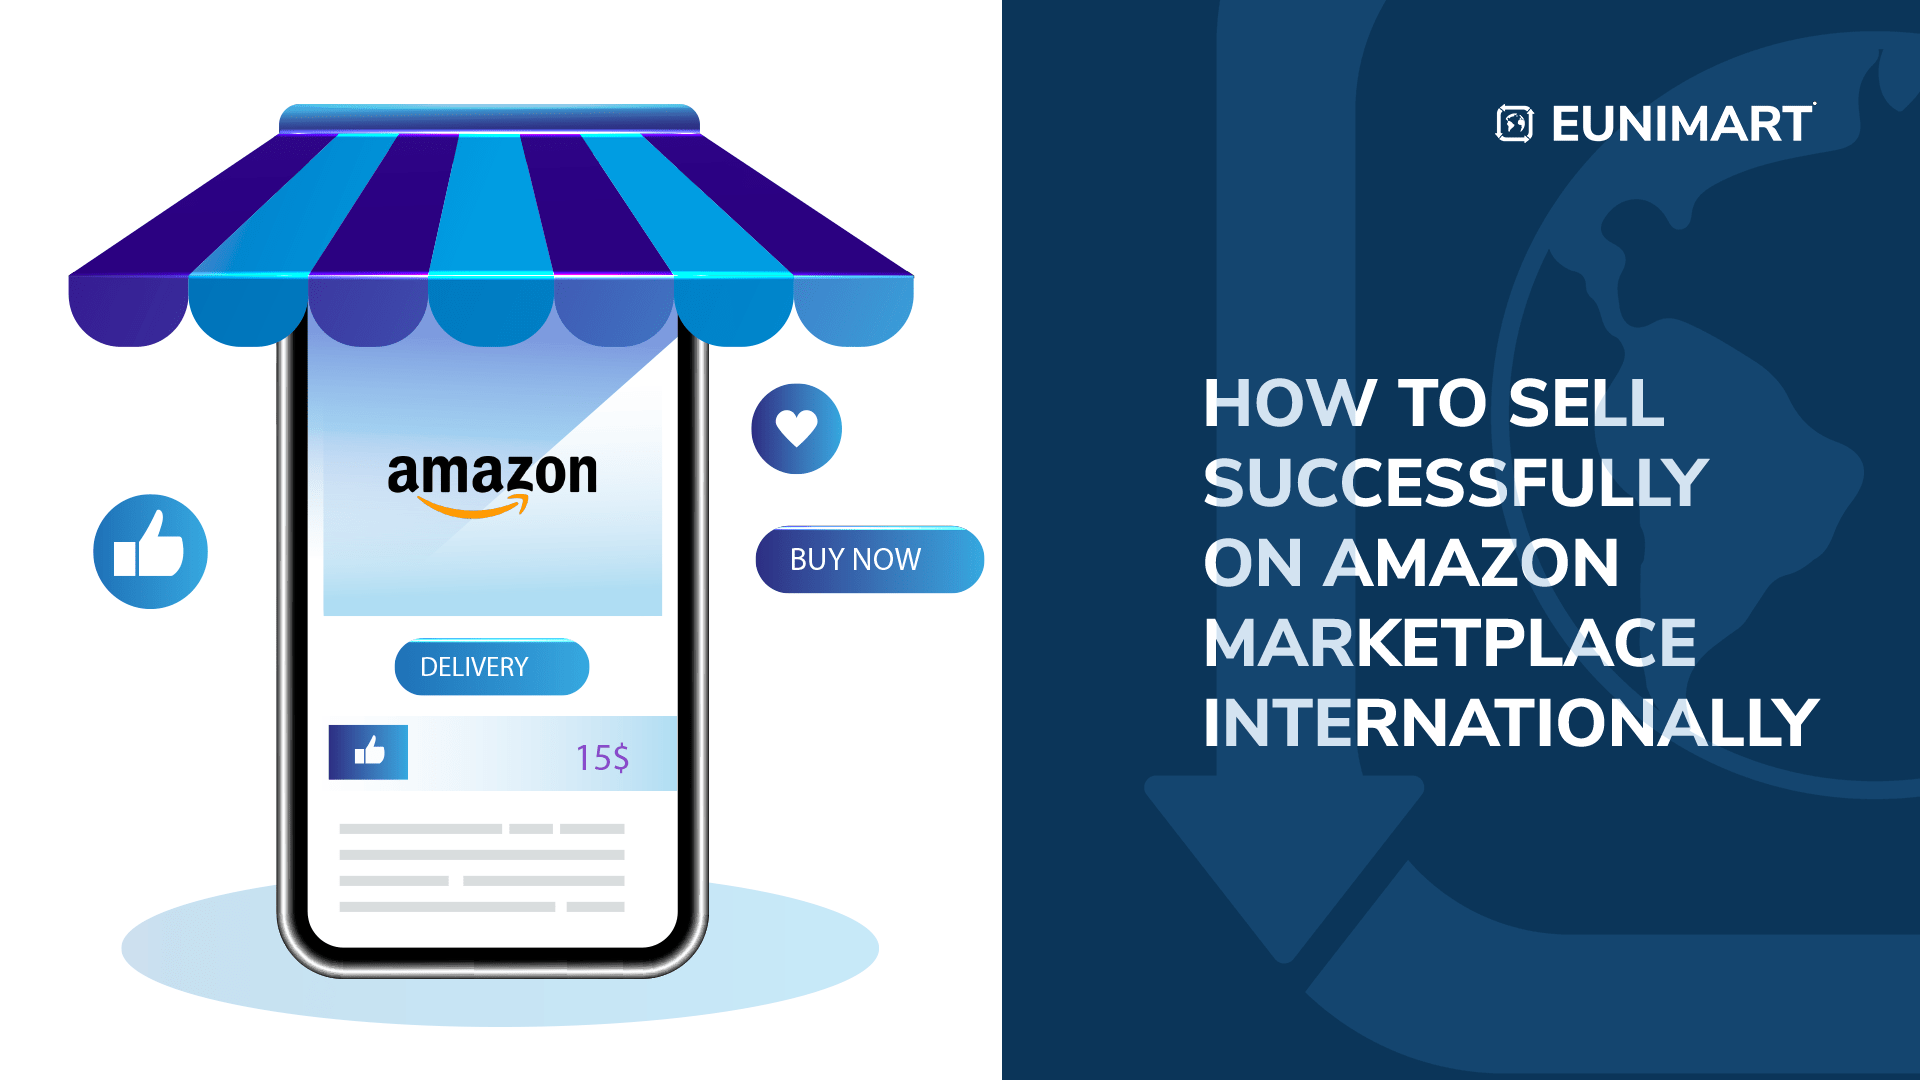 How to sell successfully on Amazon marketplace internationally